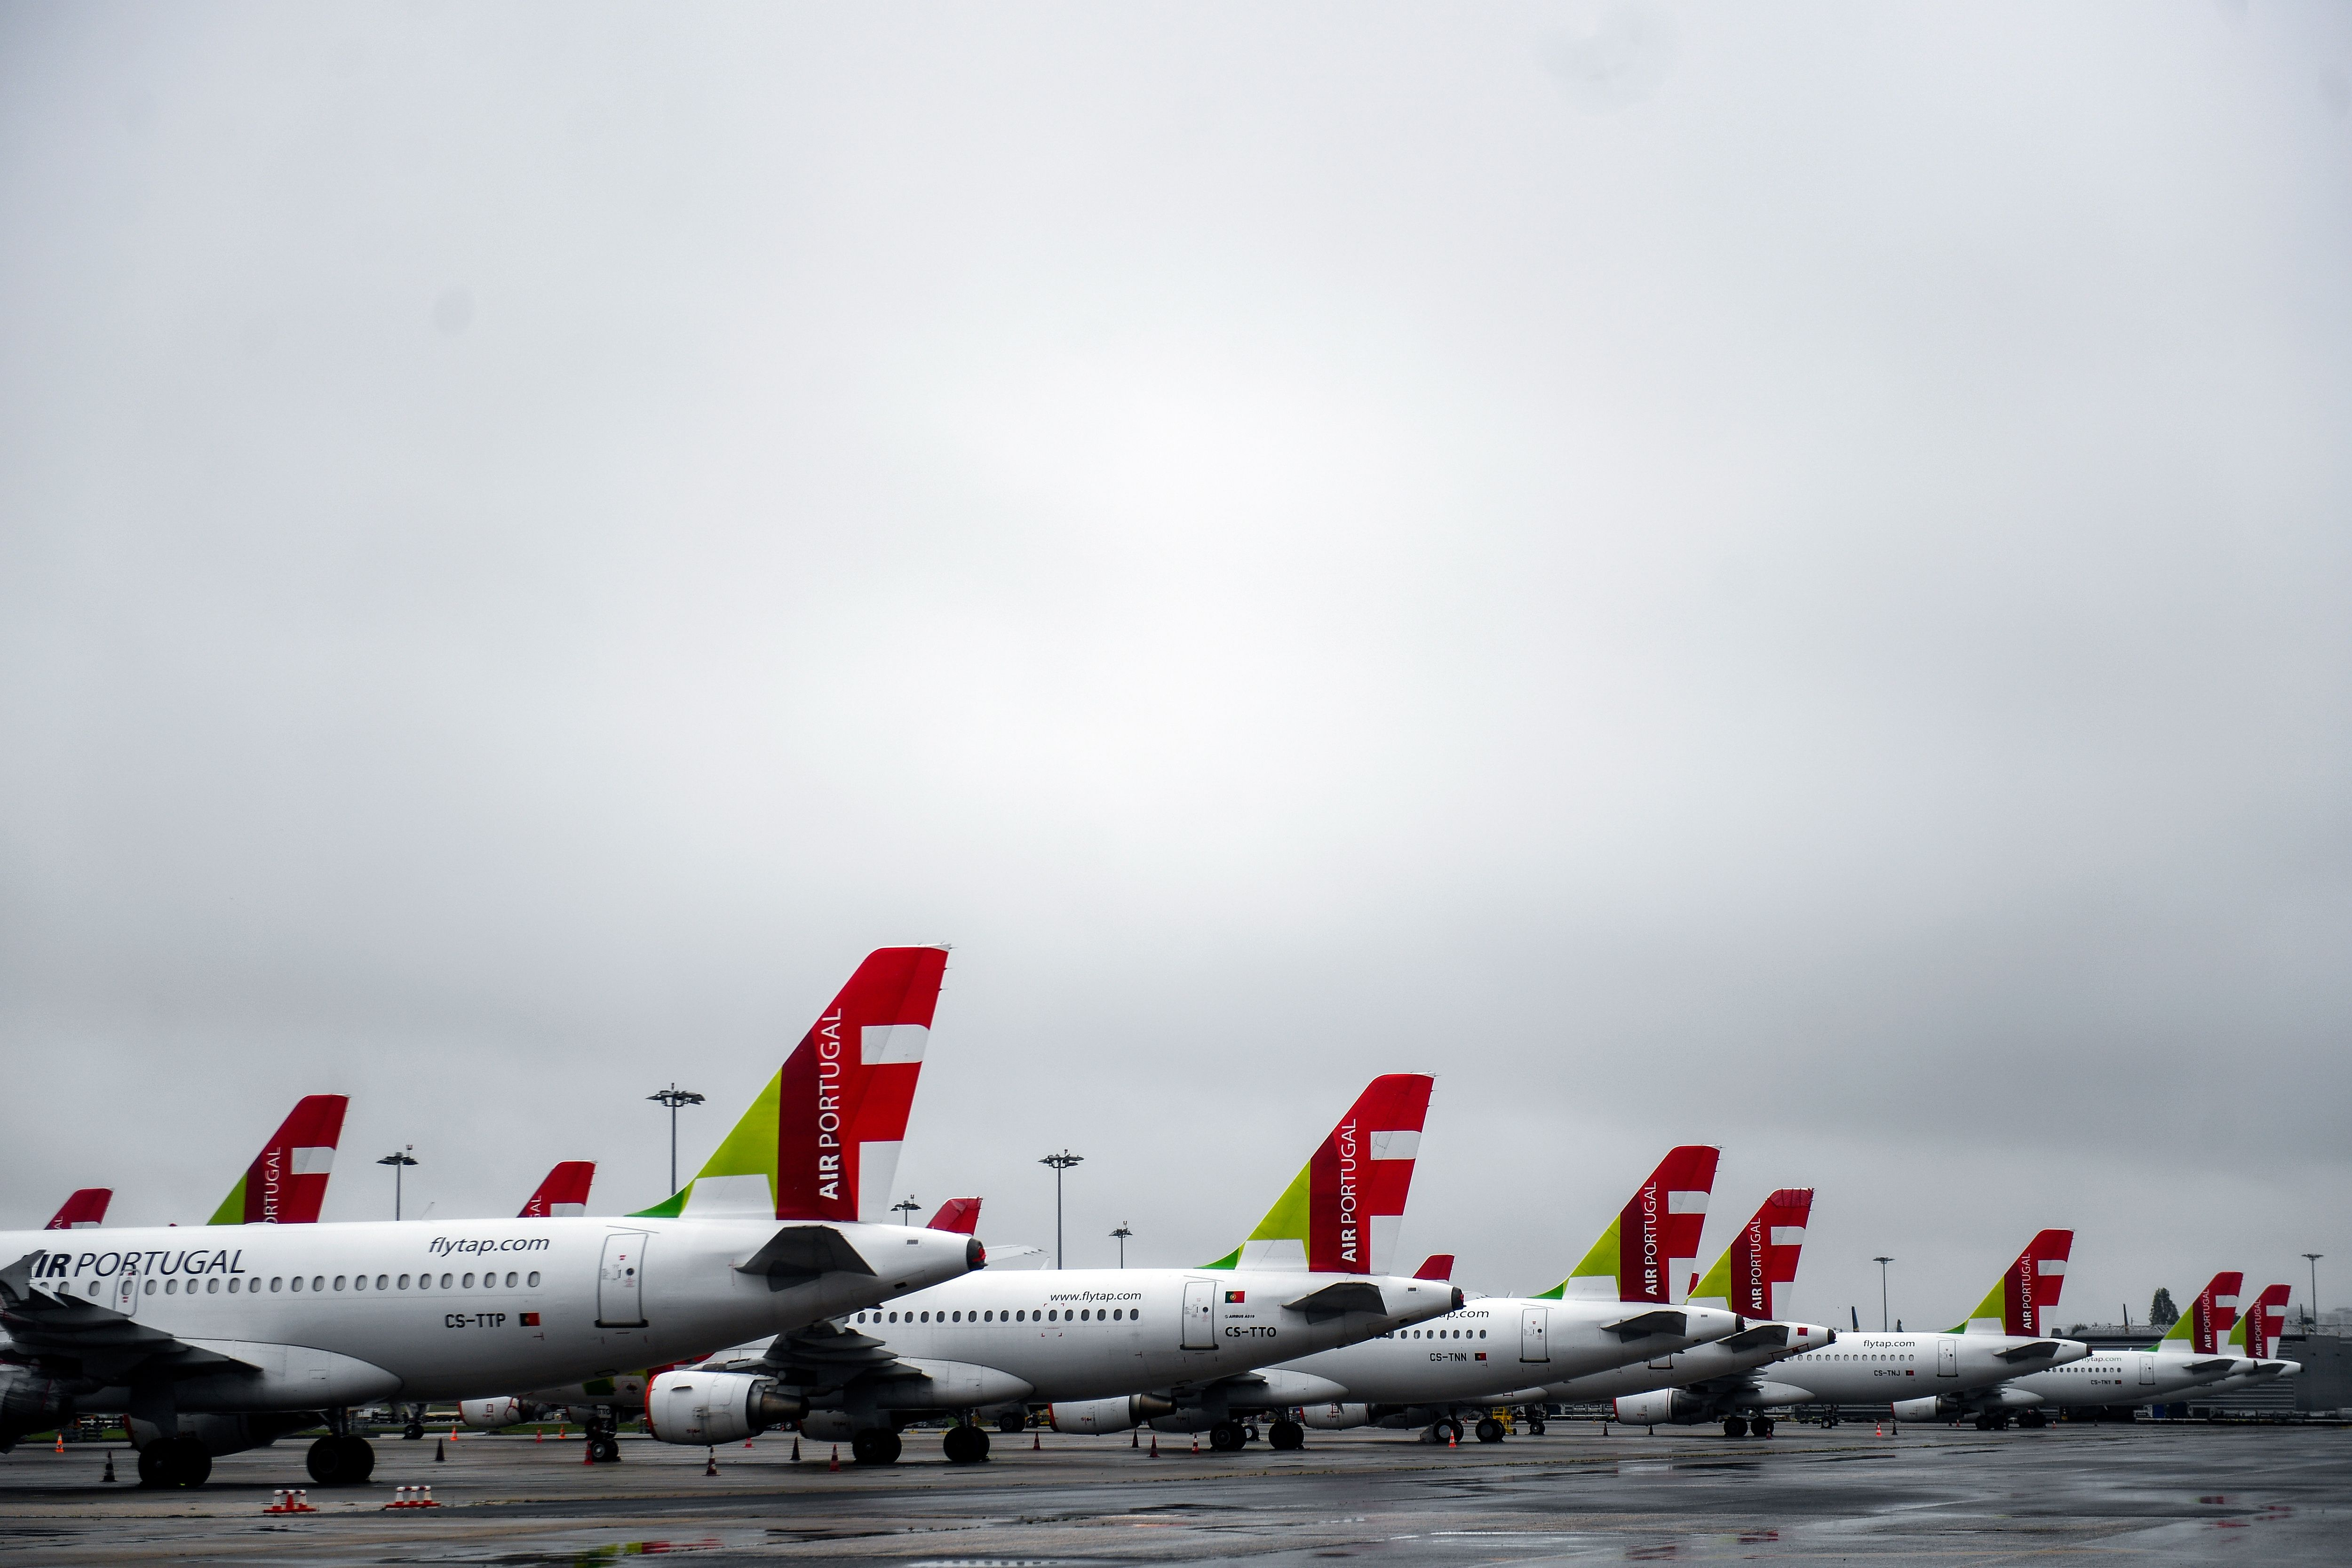 TAP airline planes on the tarmac of the Humberto Delgado airport in Lisbon on April 9, 2020.